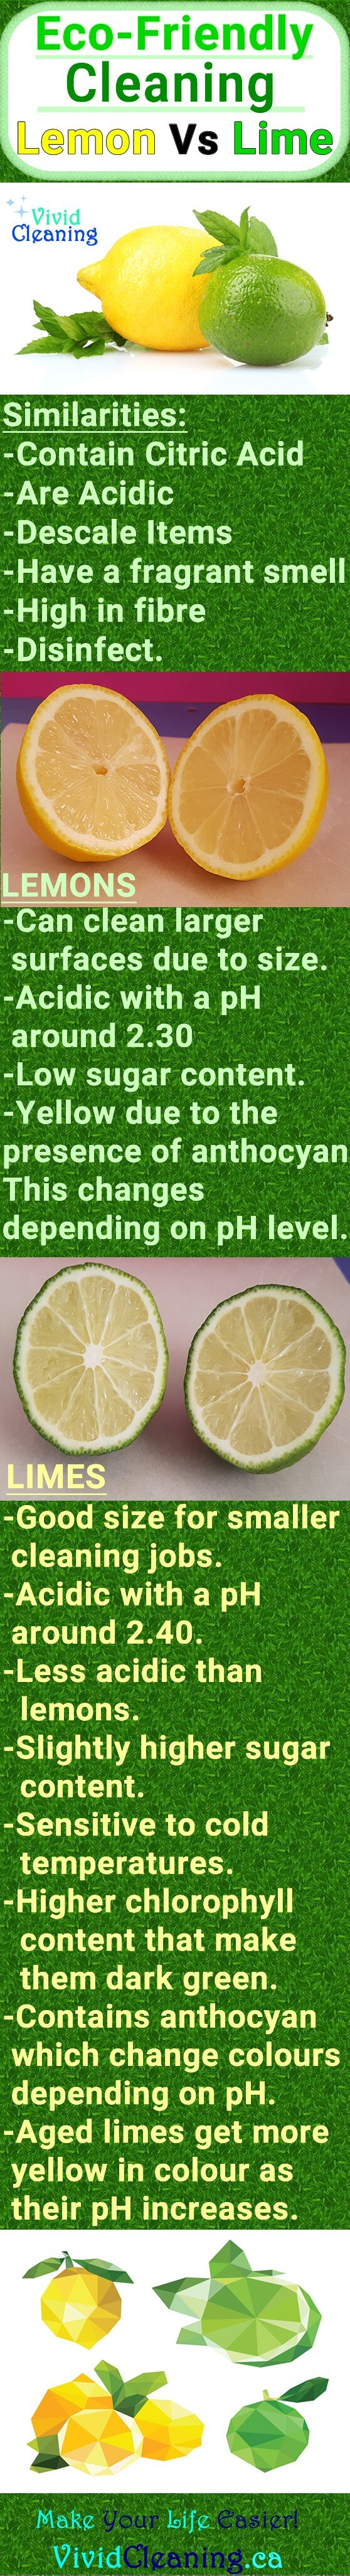 Similarities: -Contain Citric Acid -Are Acidic -Descale Items -Have a fragrant smell -High in fibre -Disinfect. Lemons: -Can clean larger surfaces due to size. -Acidic with a pH around 2.30 -Low sugar content. -Yellow due to the presence of anthocyan This changes depending on pH level. Limes -Good size for smaller cleaning jobs. -Acidic with a pH around 2.40. -Less acidic than lemons. -Slightly higher sugar content. -Sensitive to cold temperatures. -Higher chlorophyll content that make them dark green. -Contains anthocyan which change colours depending on pH. -Aged limes get more yellow in colour as their pH increases.